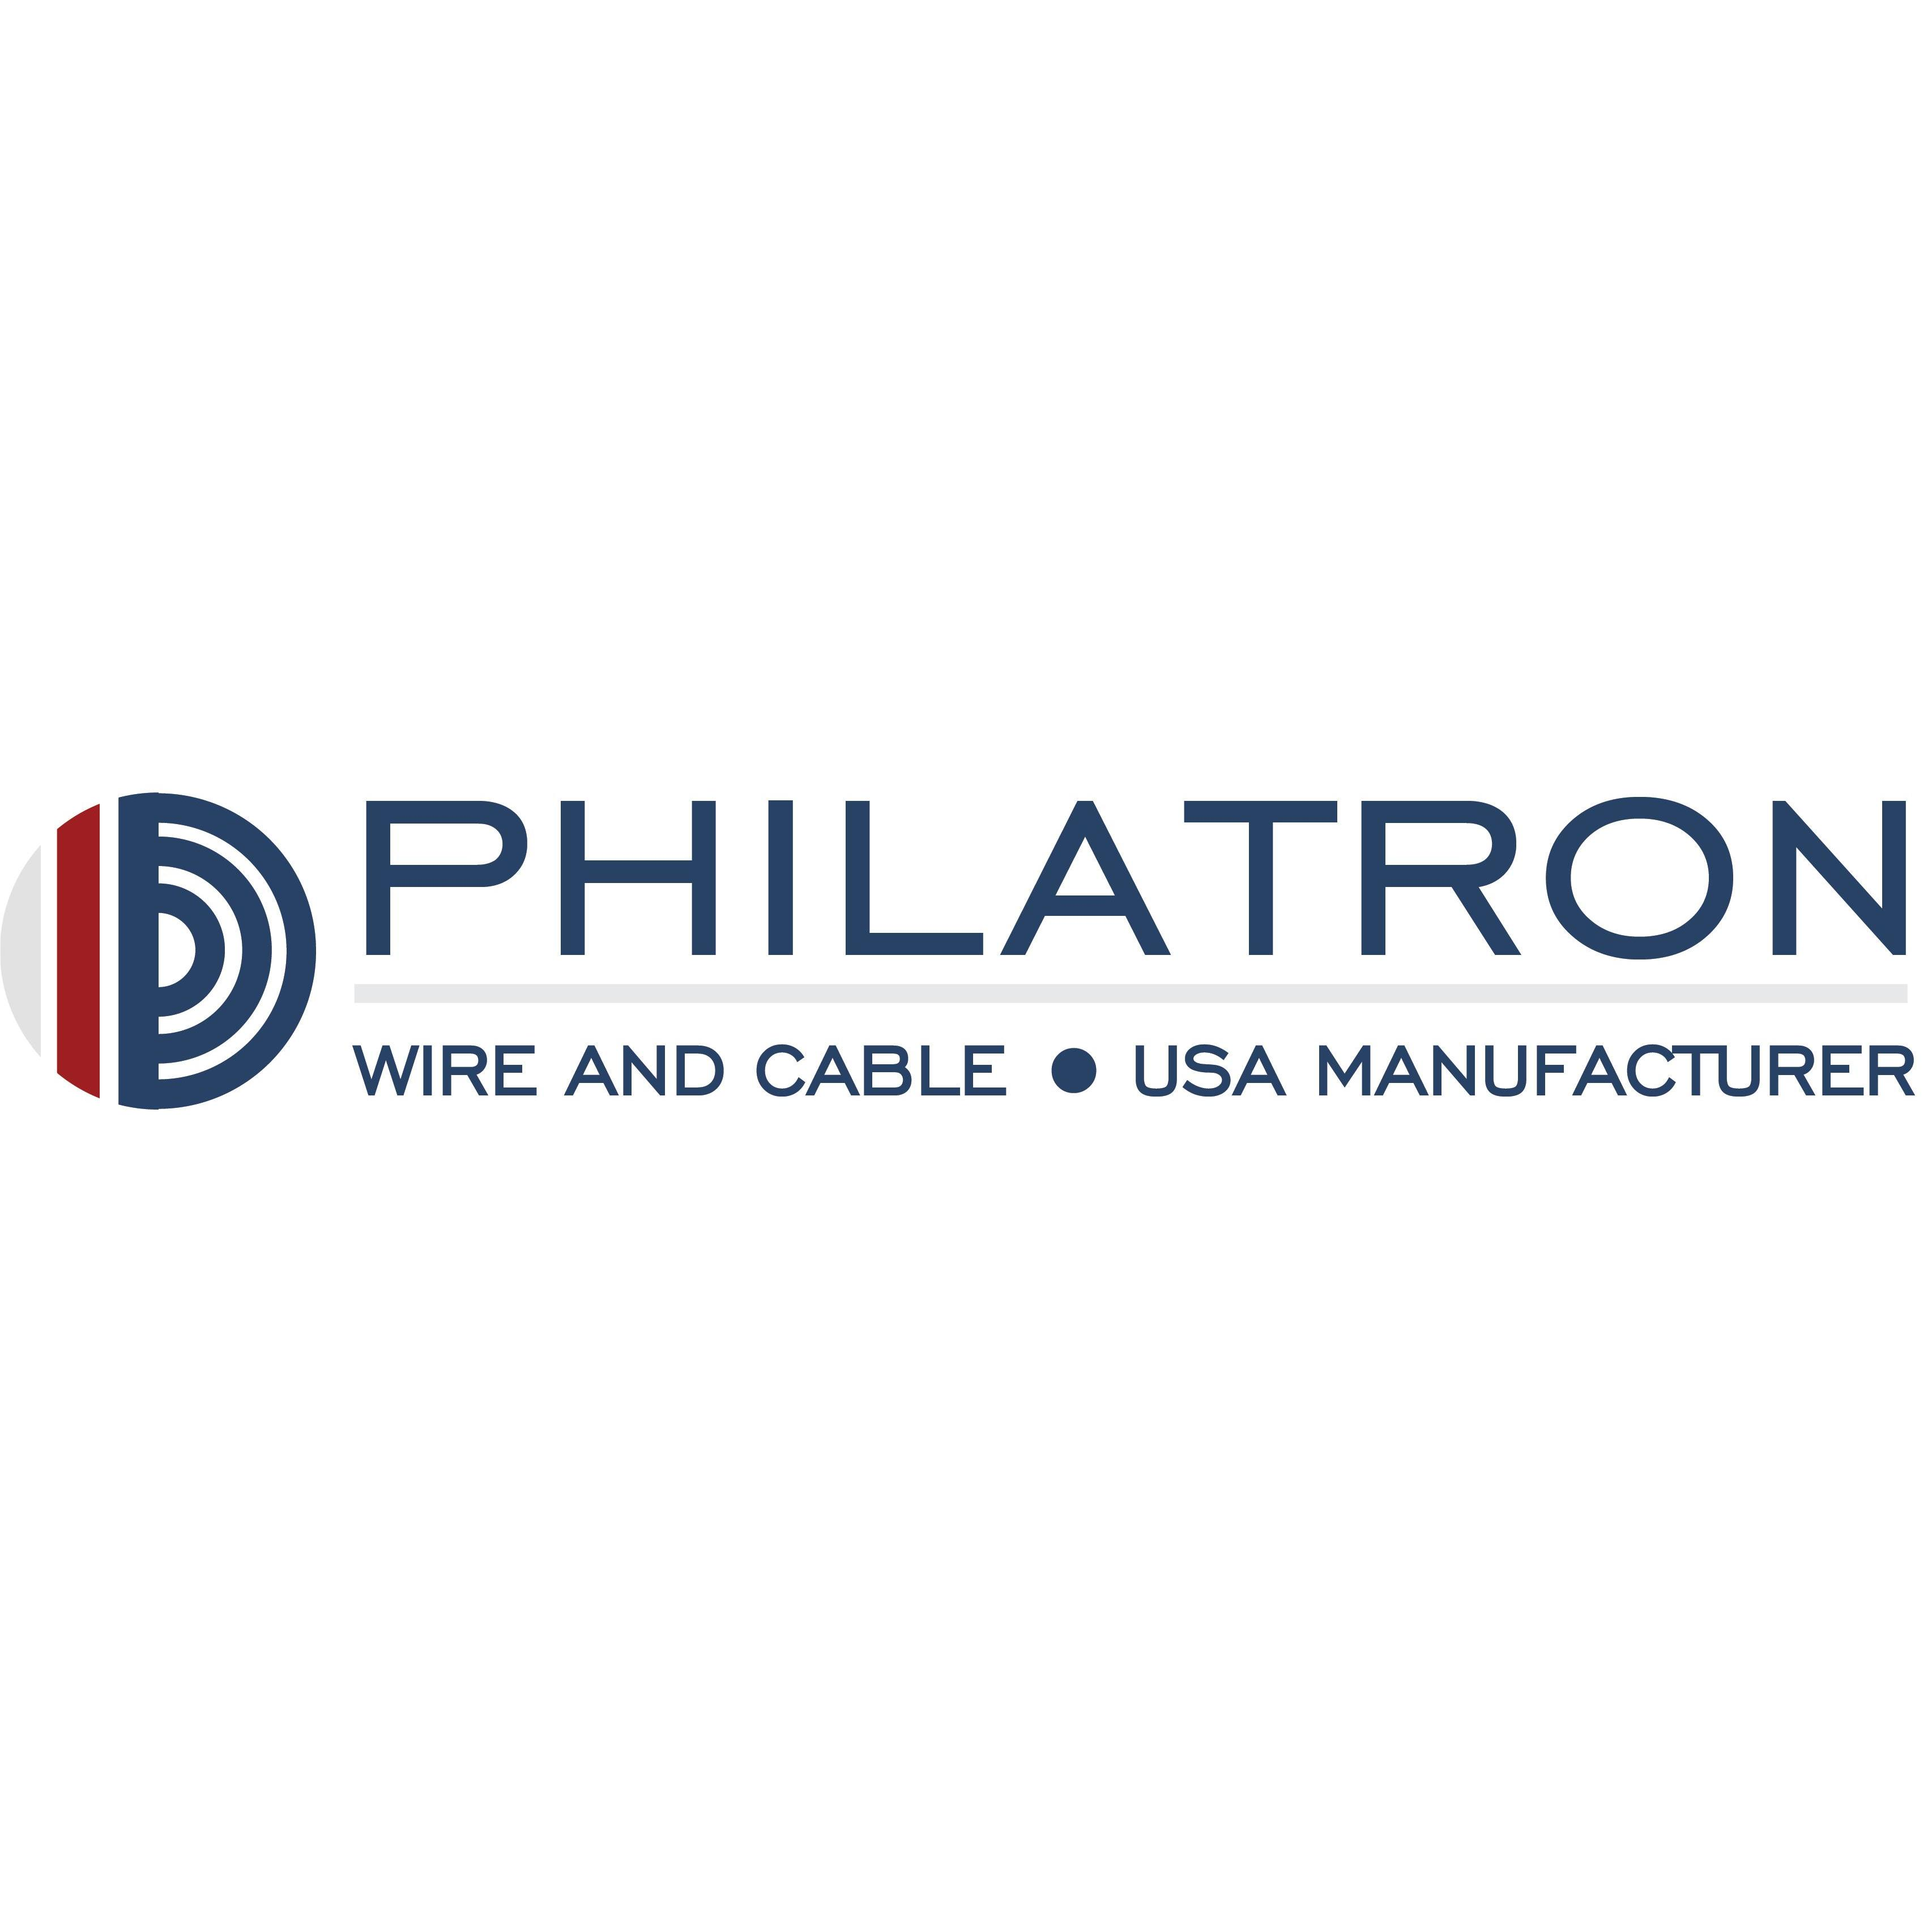 Philatron Wire and Cable - USA Manufacturer